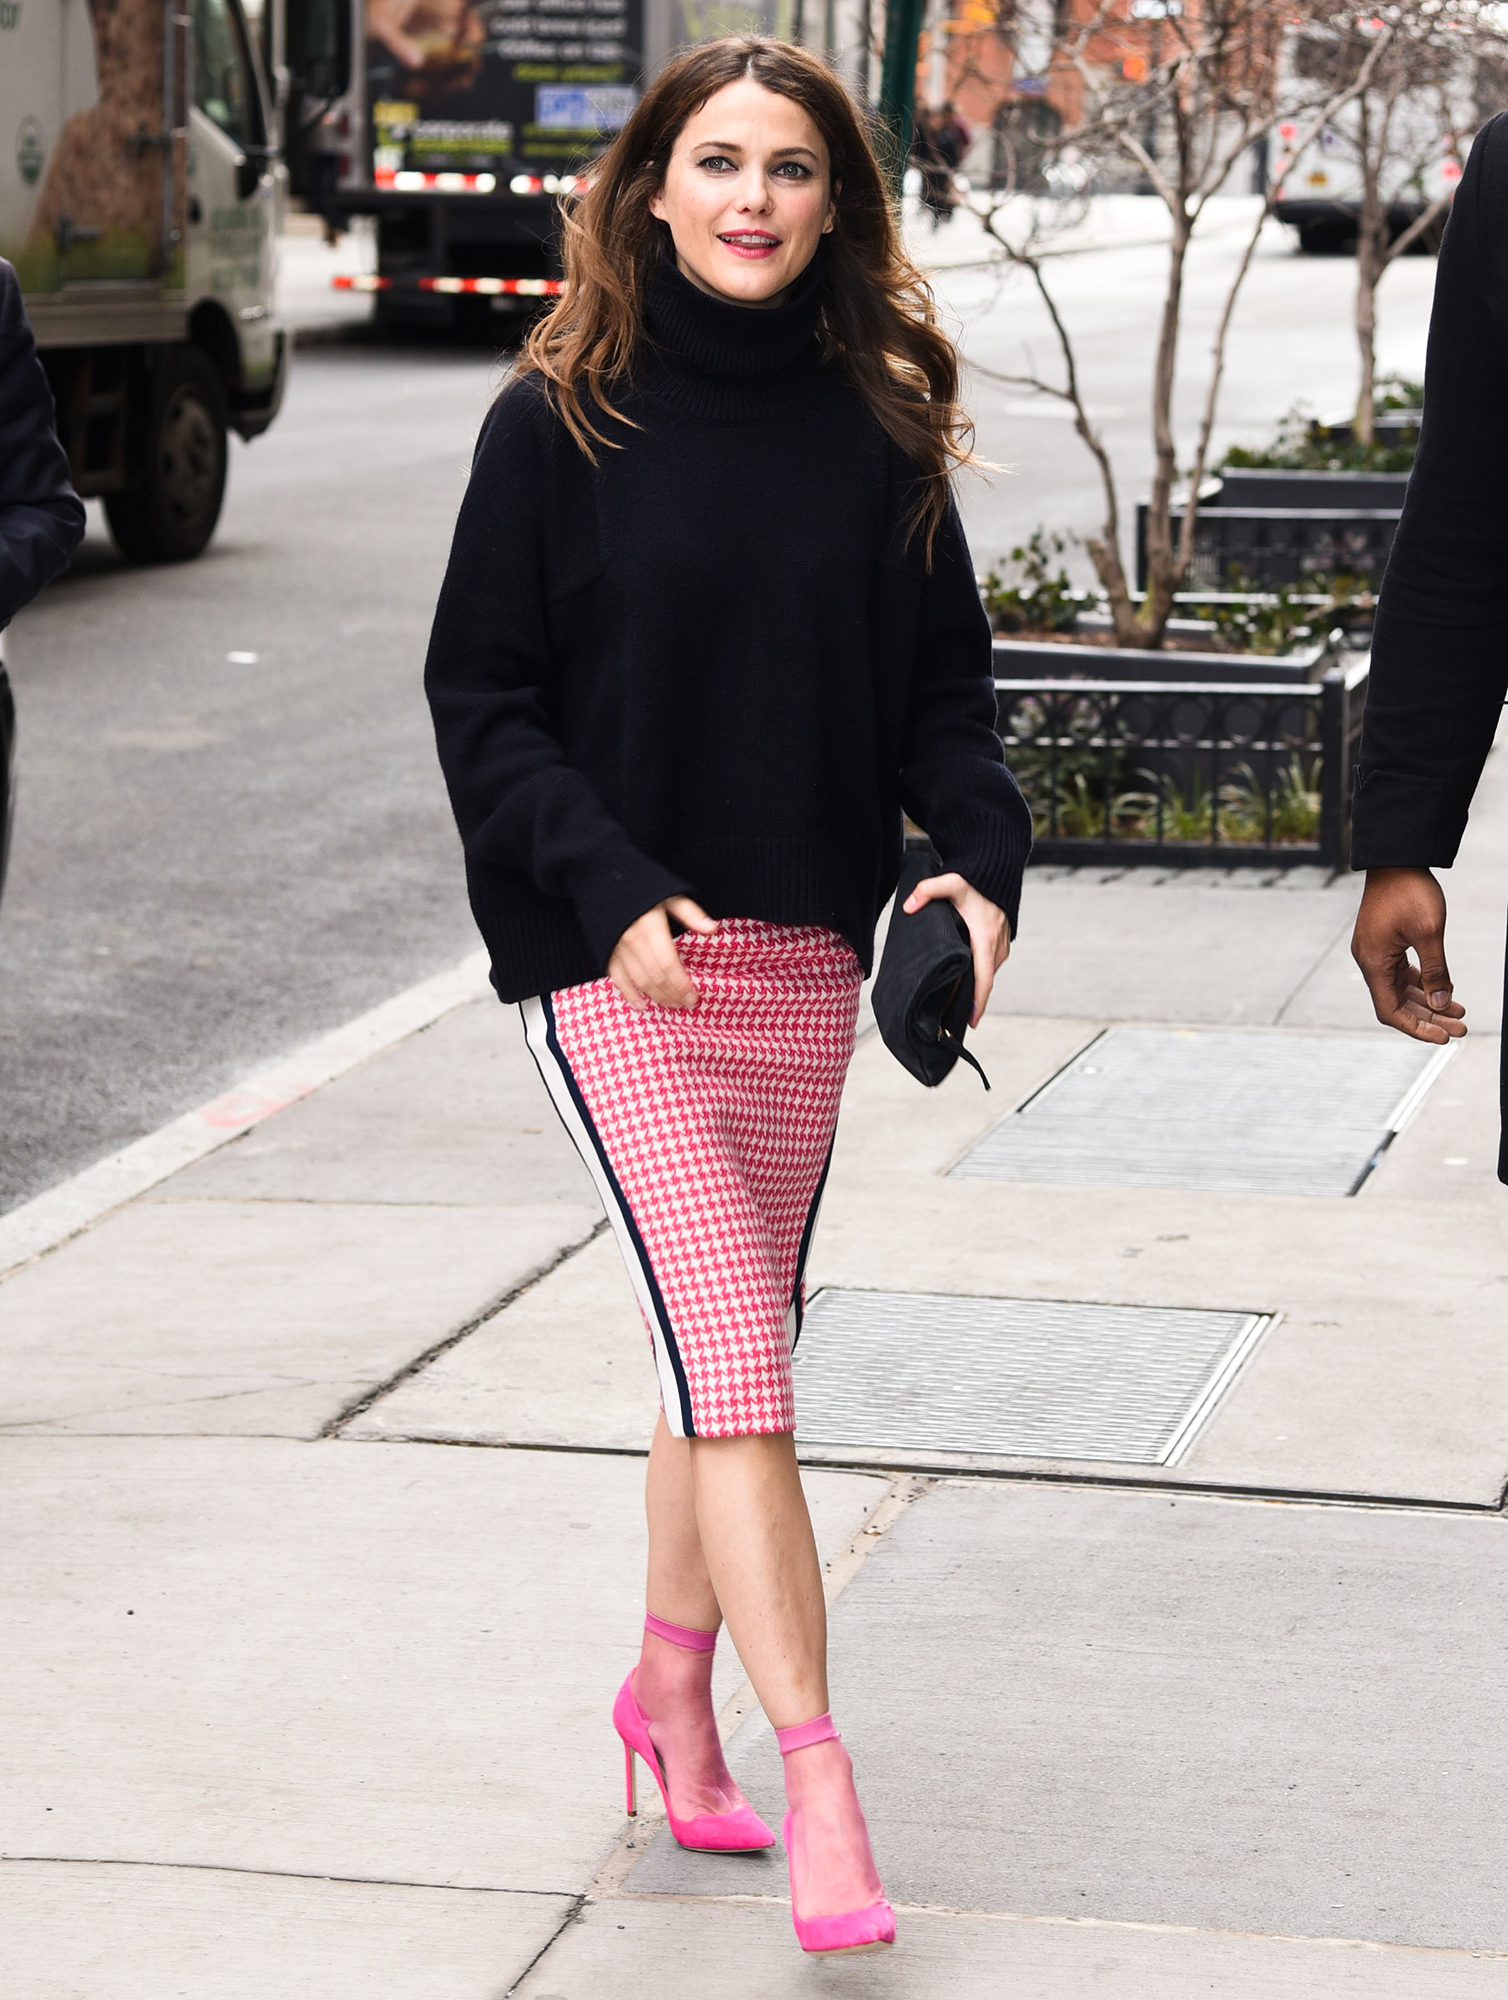 out and about for Celebrity Candids - WED, , New York, NY March 8, 2017. Photo By: Derek Storm/Everett Collection